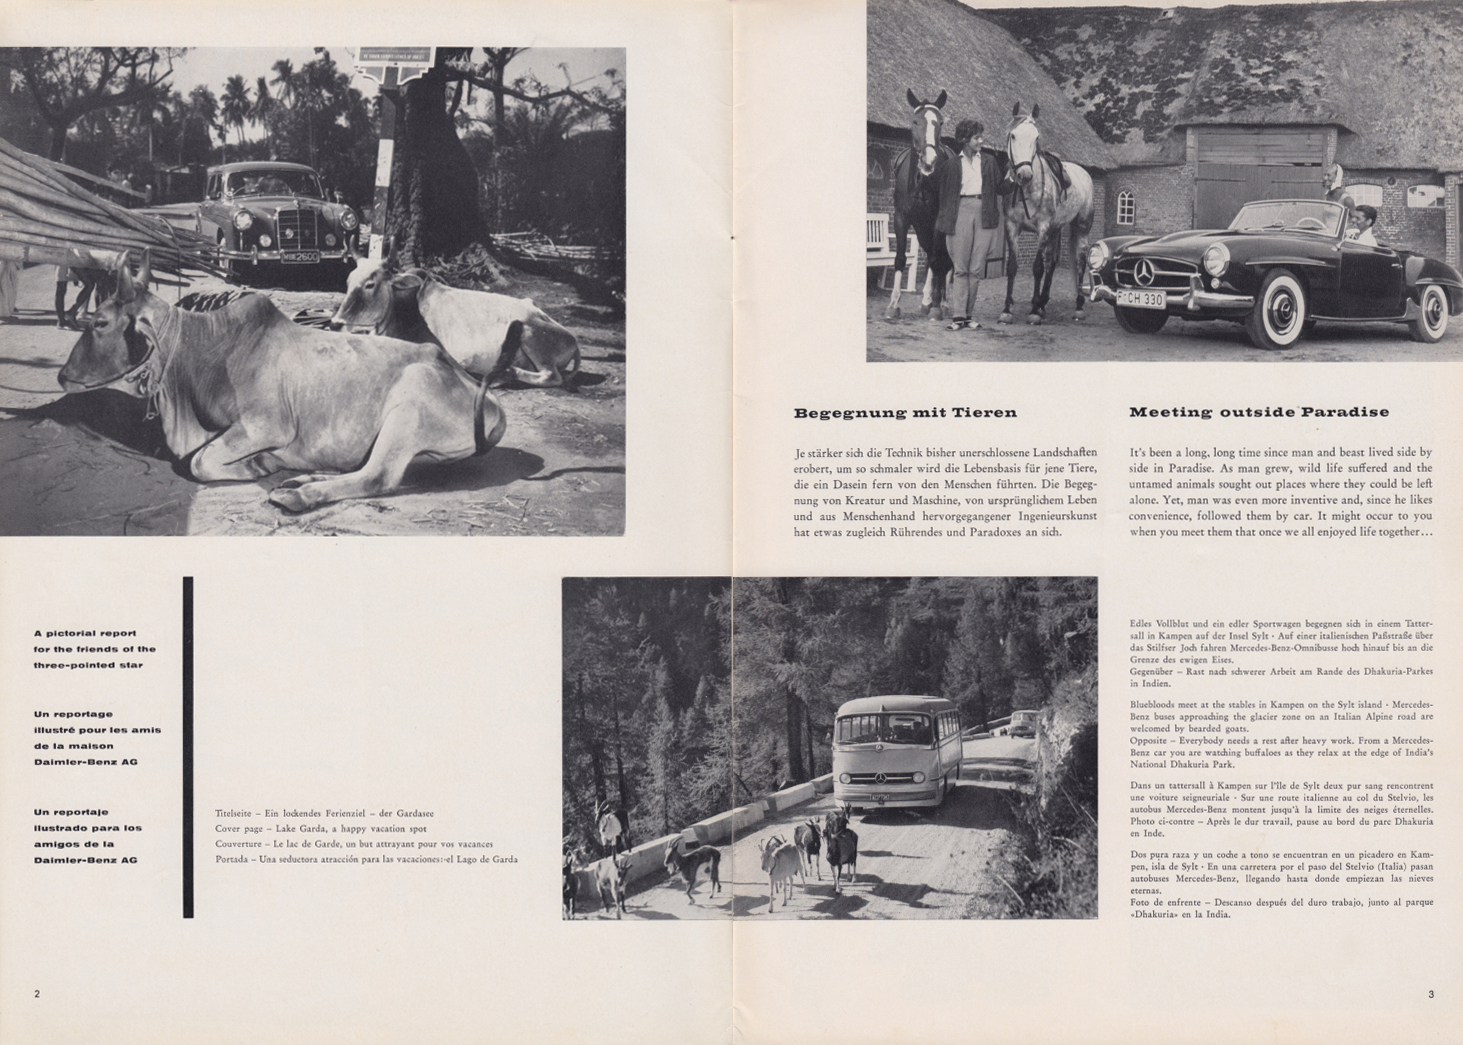 (REVISTA): Periódico In aller welt n.º 32 - Mercedes-Benz no mundo - 1959 - multilingue 002